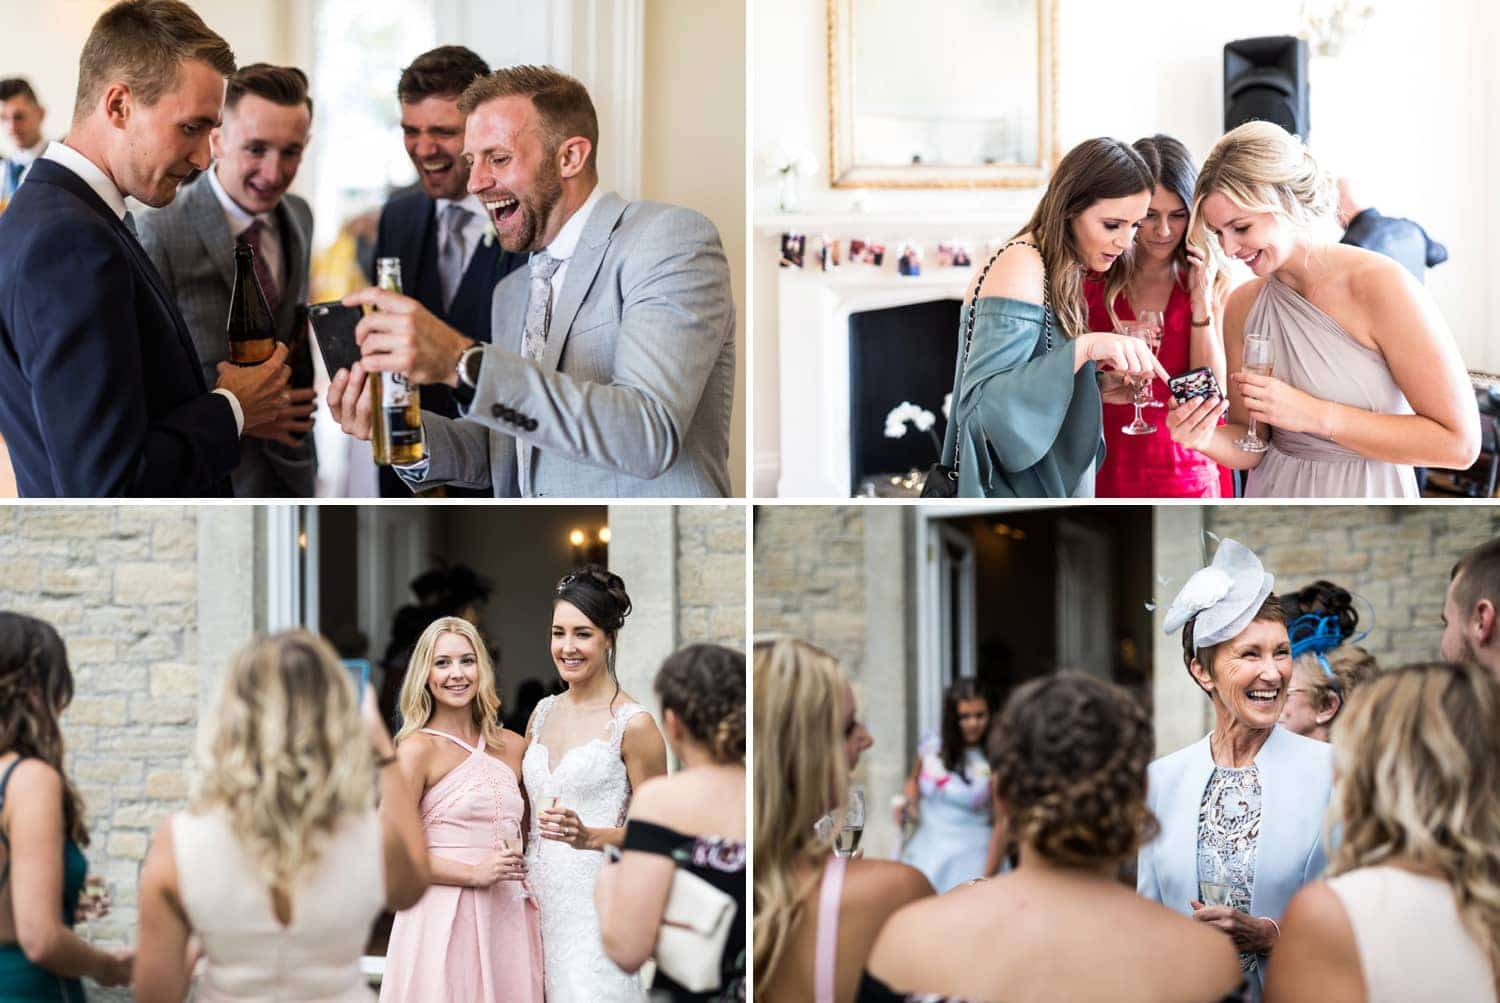 Wedding reception at St Tewdrics House in South Wales